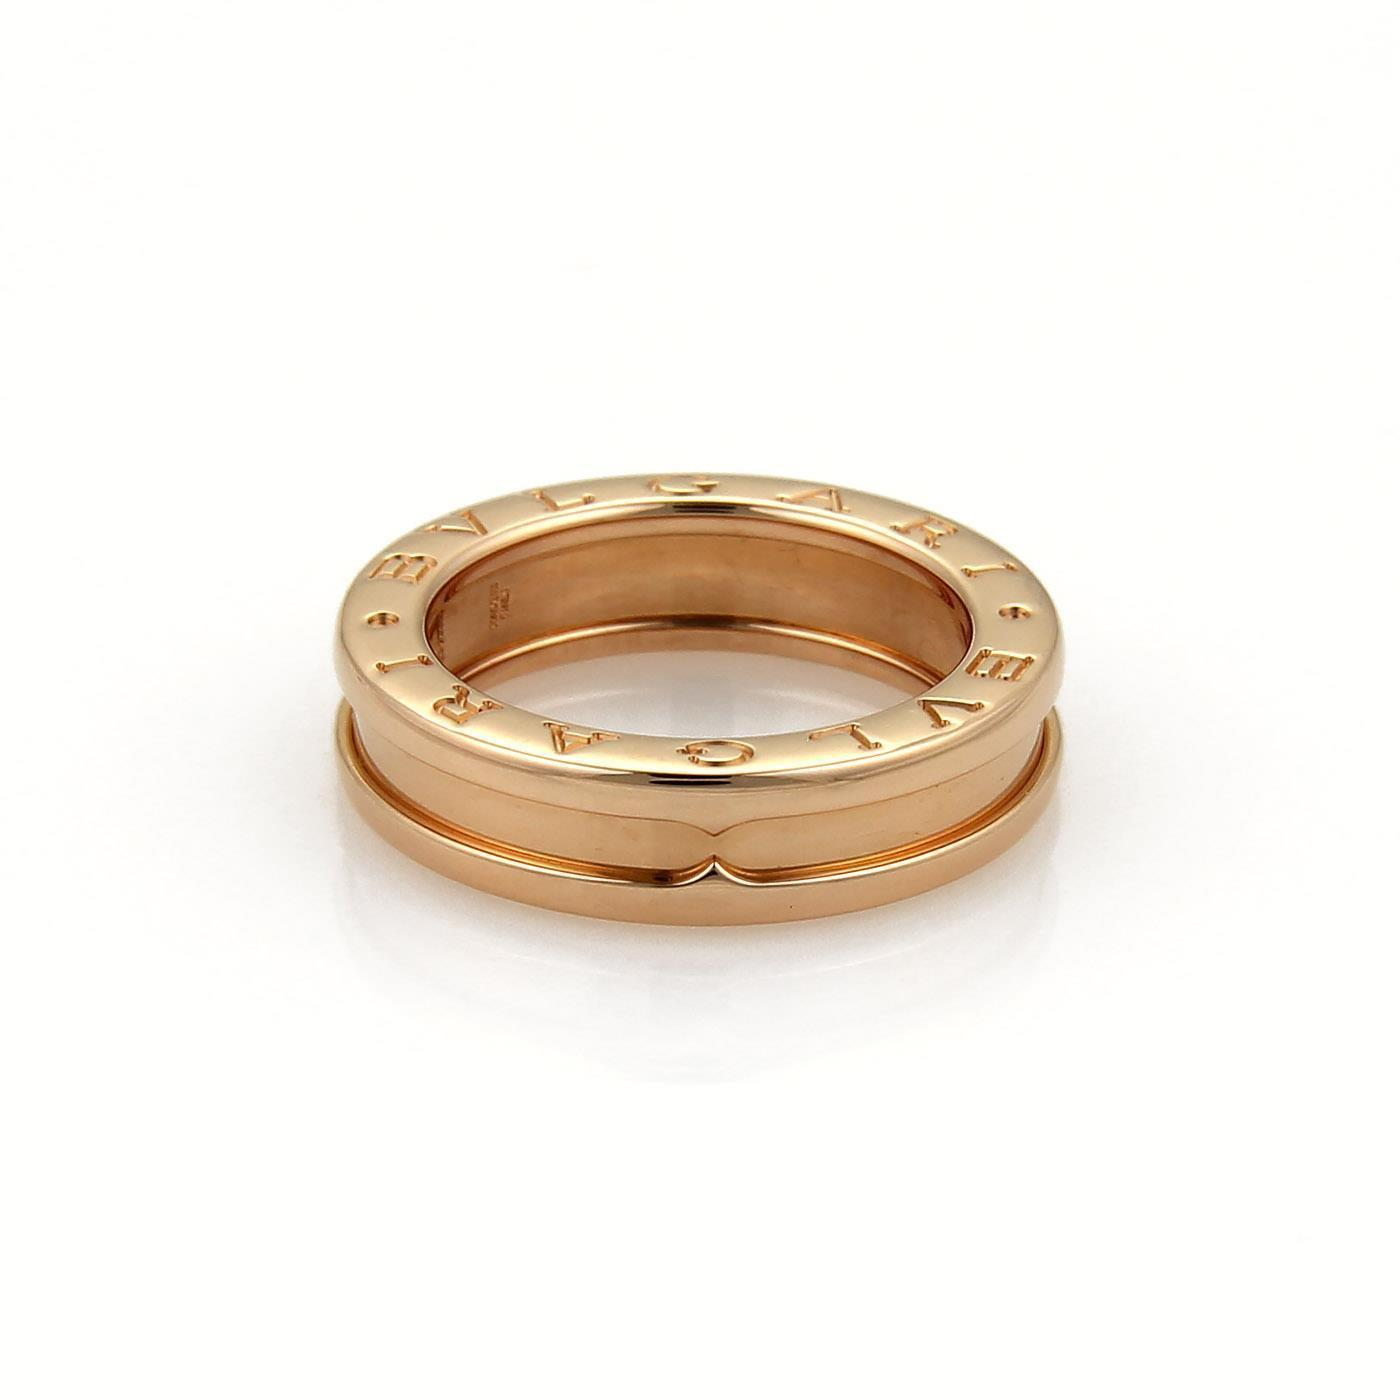 bvlgari bulgari b zero1 18k rose gold 5mm band ring size eu 48